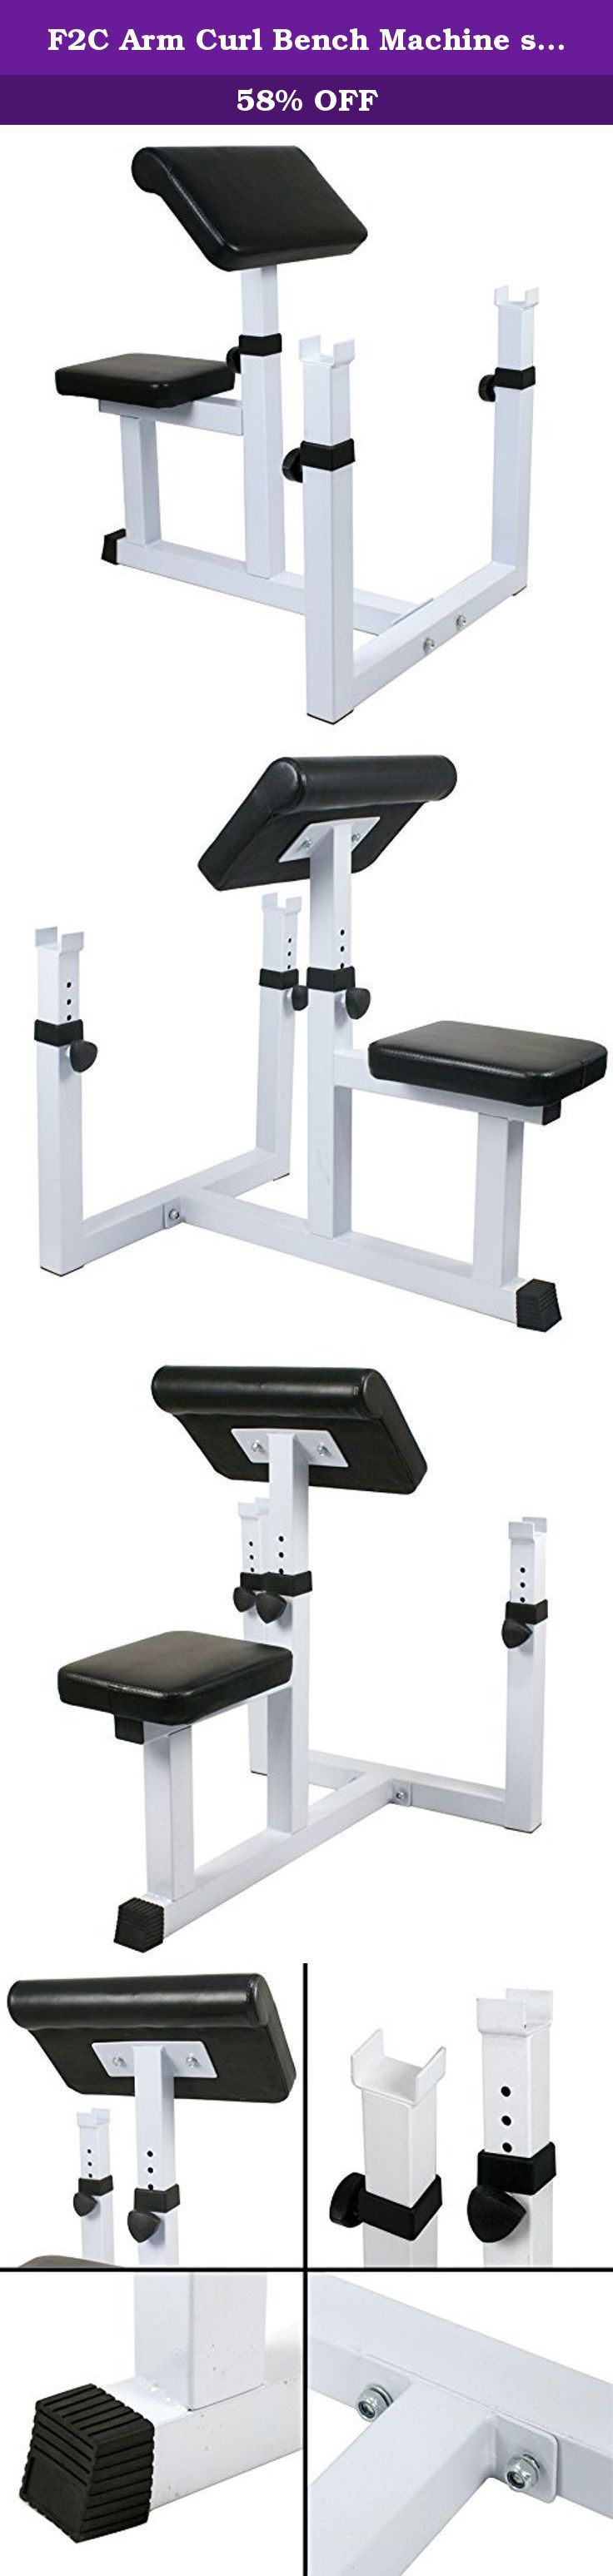 """F2C Arm Curl Bench Machine seated Commercial Preacher Dumbbell Biceps Home Gym (Machine Biceps Curls). Specifications: Weight: 33 lbs Max loading: 440 lbs 50*50*2.0mm tube size Thickness of the pad: 2"""" Size of the Pads:15"""" x 10"""" , 14"""" x 9.5"""" Whole Size: 29.5""""(L) x 24""""(W) x 35""""(H) Bar rest adjustment: 18"""" - 22""""(H) Arm rest adjustment: Five-position 31"""" - 35""""(H) Package include: 1 x Arm curl bench (need assembled) The Arm Curl Bench allows you to put more intensity into working your biceps…"""